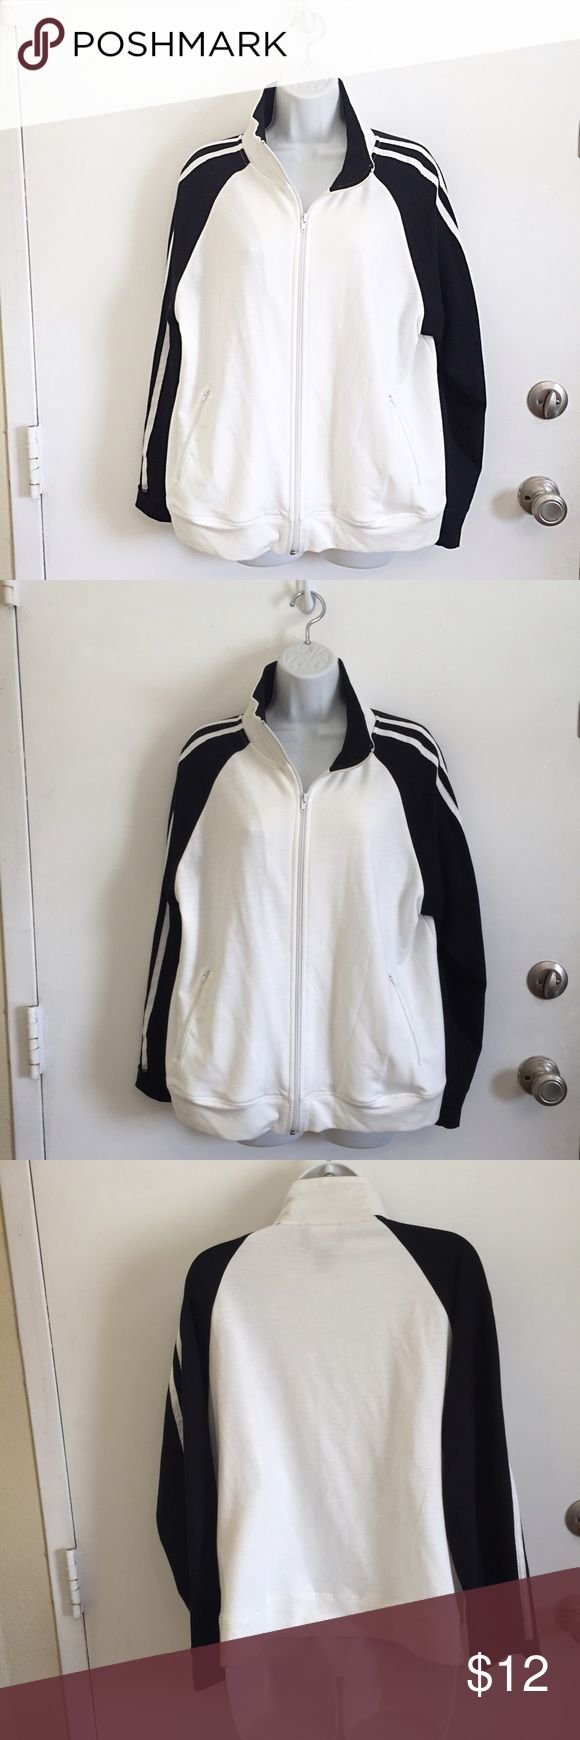 Athletic Style Zip Up Jacket Basic black and white zip up athletic style light jacket. Size XL. Has some piling/pulls on the inside but you can't see them when wearing. #jacket #lightweight #athletic #blackandwhite #xl #punkydoodle  No modeling Smoke and pet free home I do discount bundles Jackets & Coats